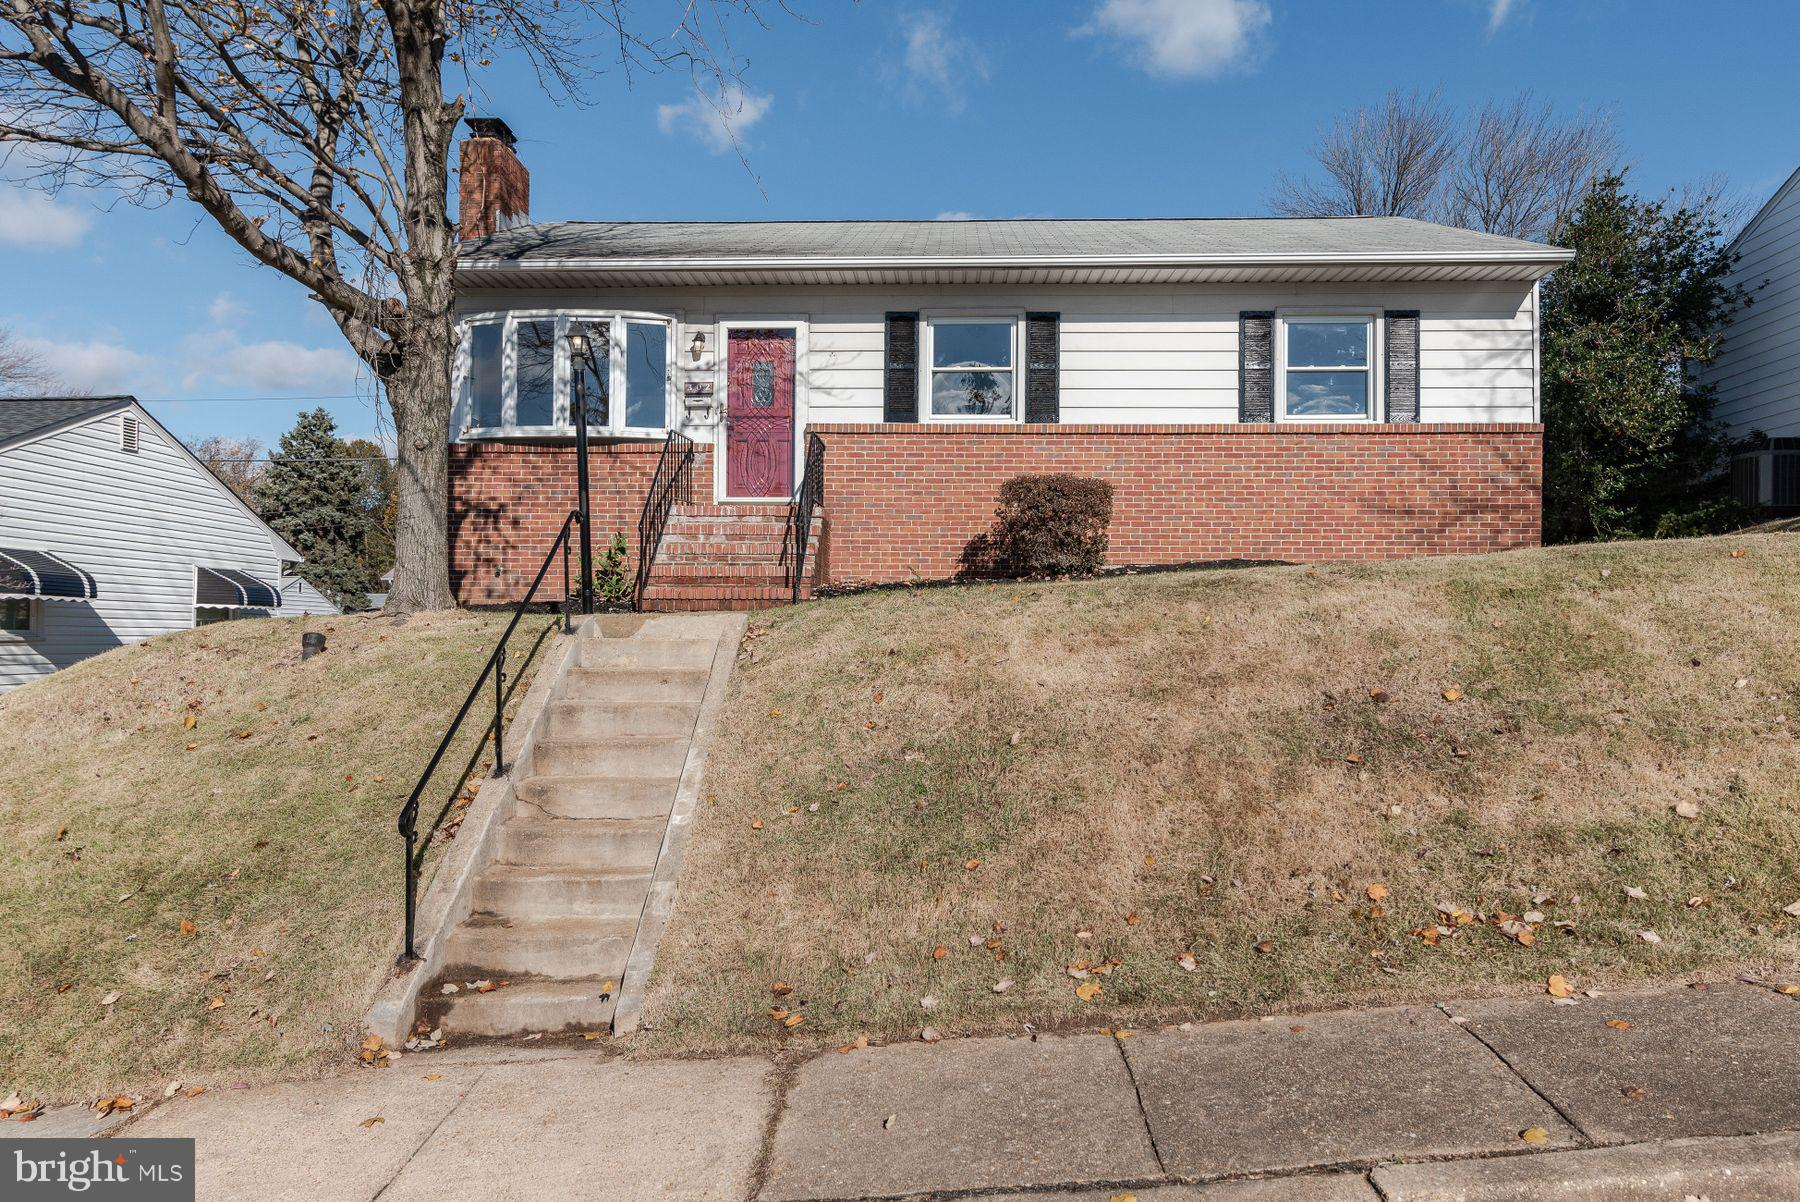 302 15TH AVENUE, BALTIMORE, MD 21225